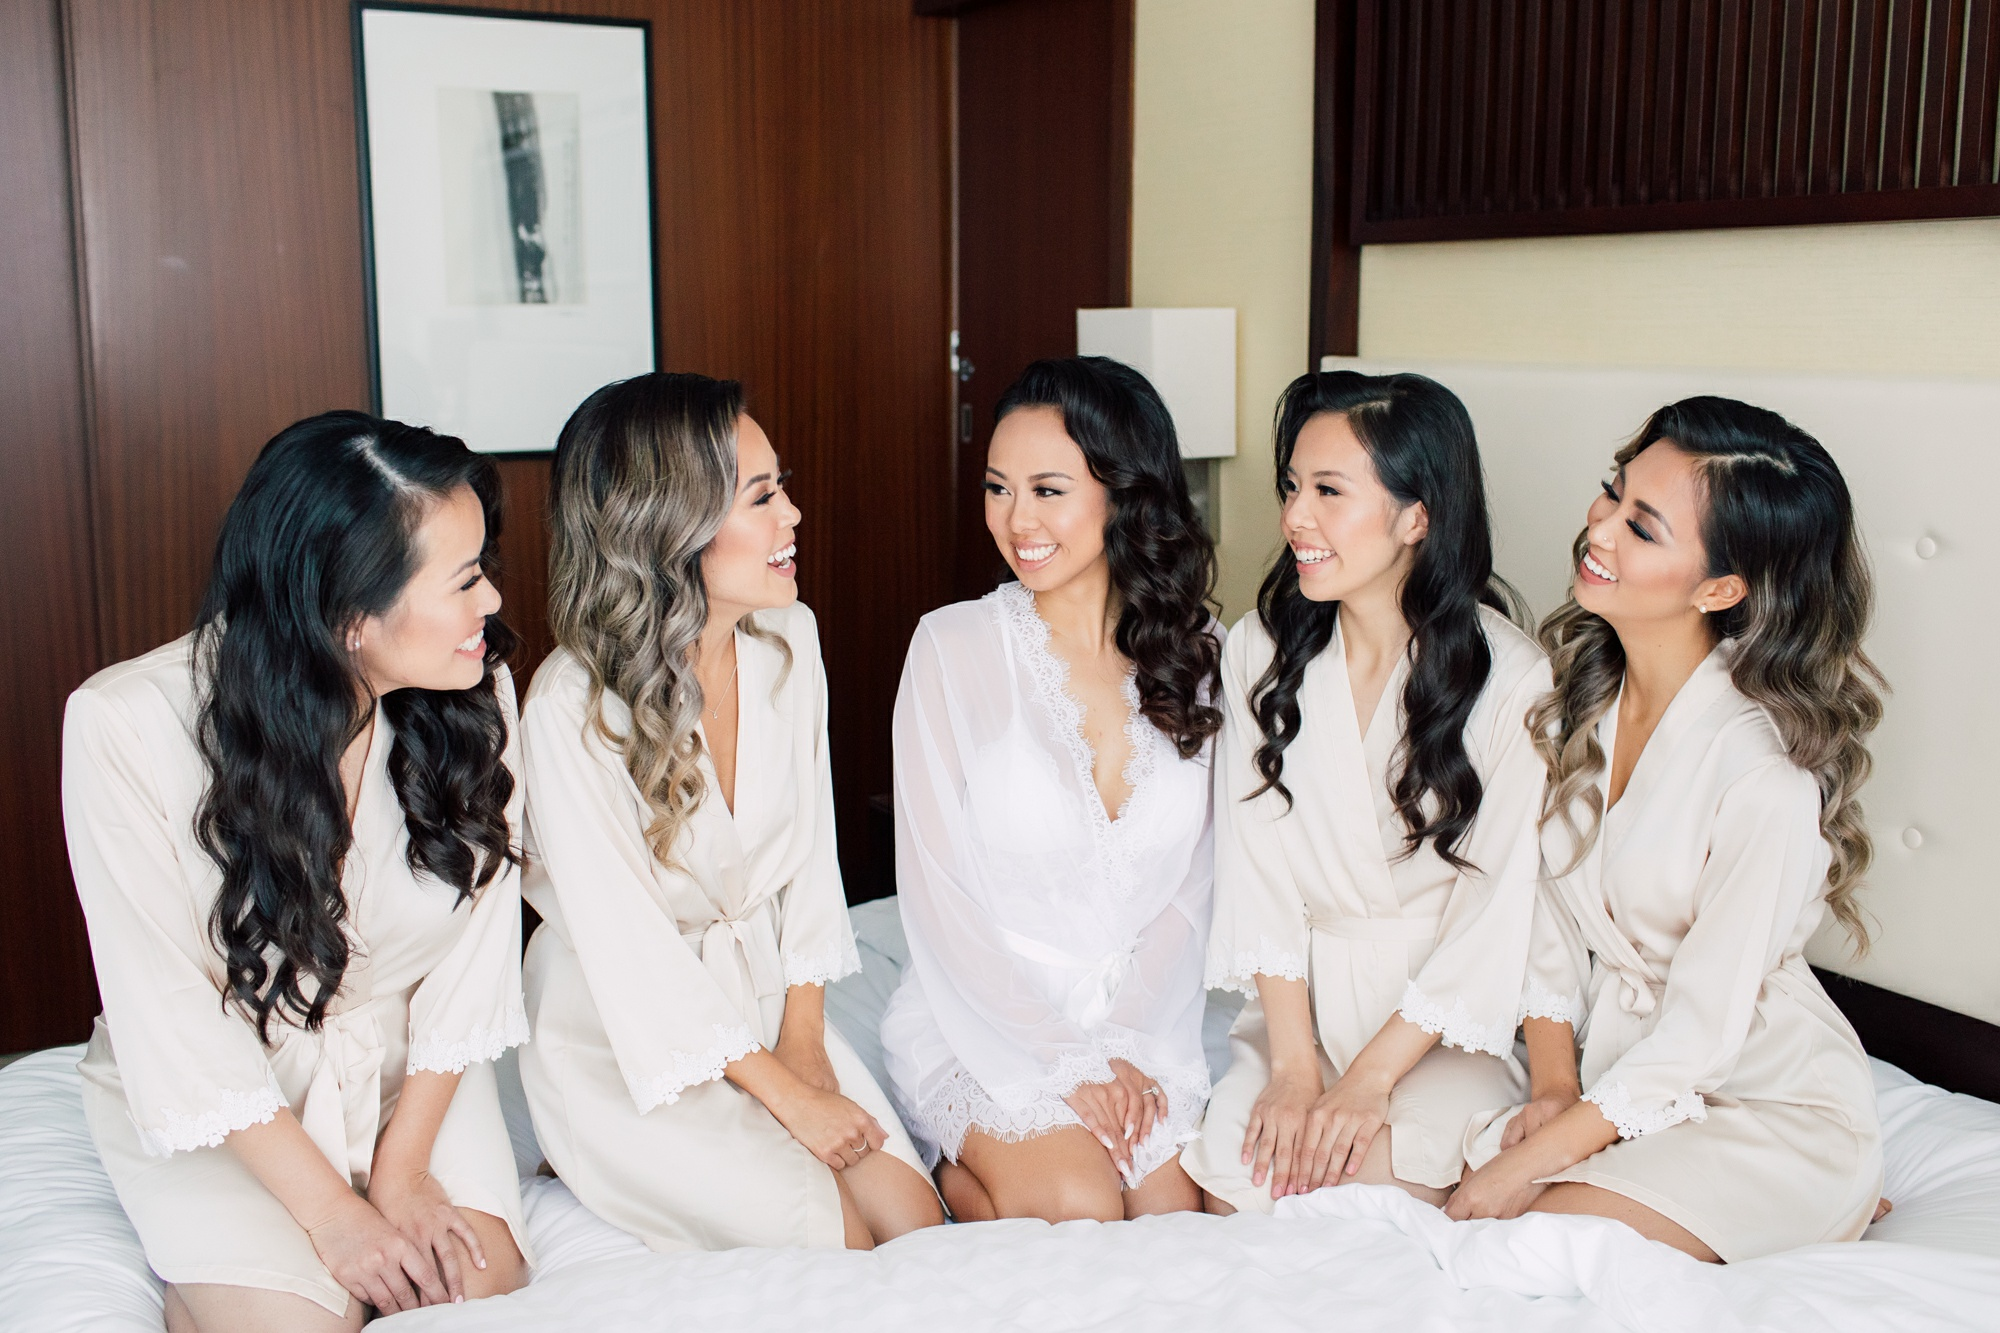 Best glam squad! Did such a beautiful job with old hollywood glam vintage curls for me and my bridesmaids - Ashley, married September 2, 2018.★ ★ ★ ★ ★